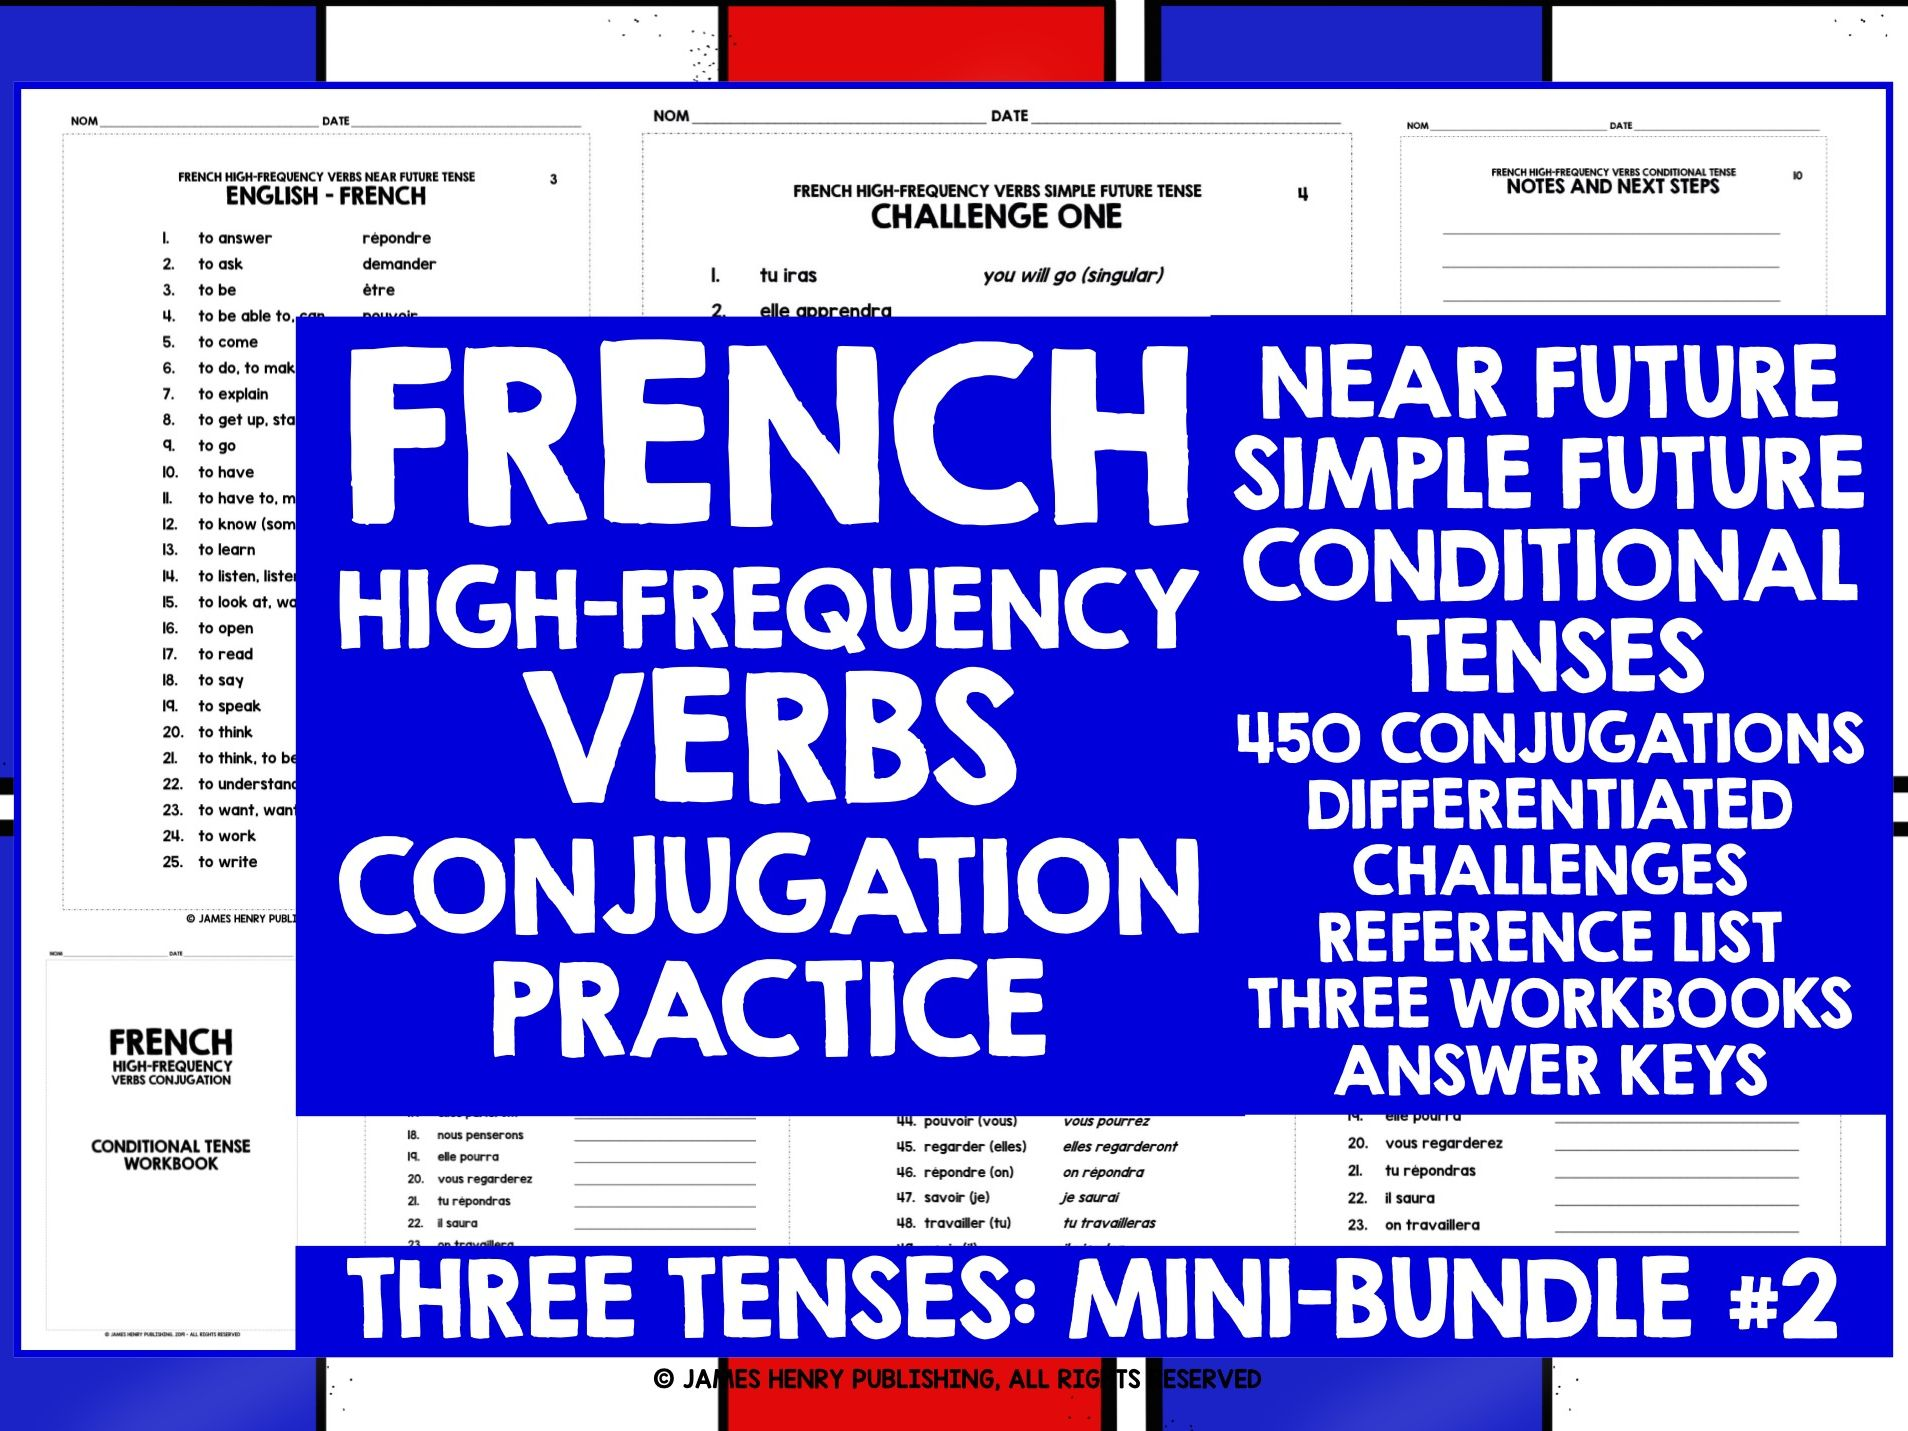 FRENCH HIGH-FREQUENCY VERBS CONJUGATION MINI-BUNDLE 2